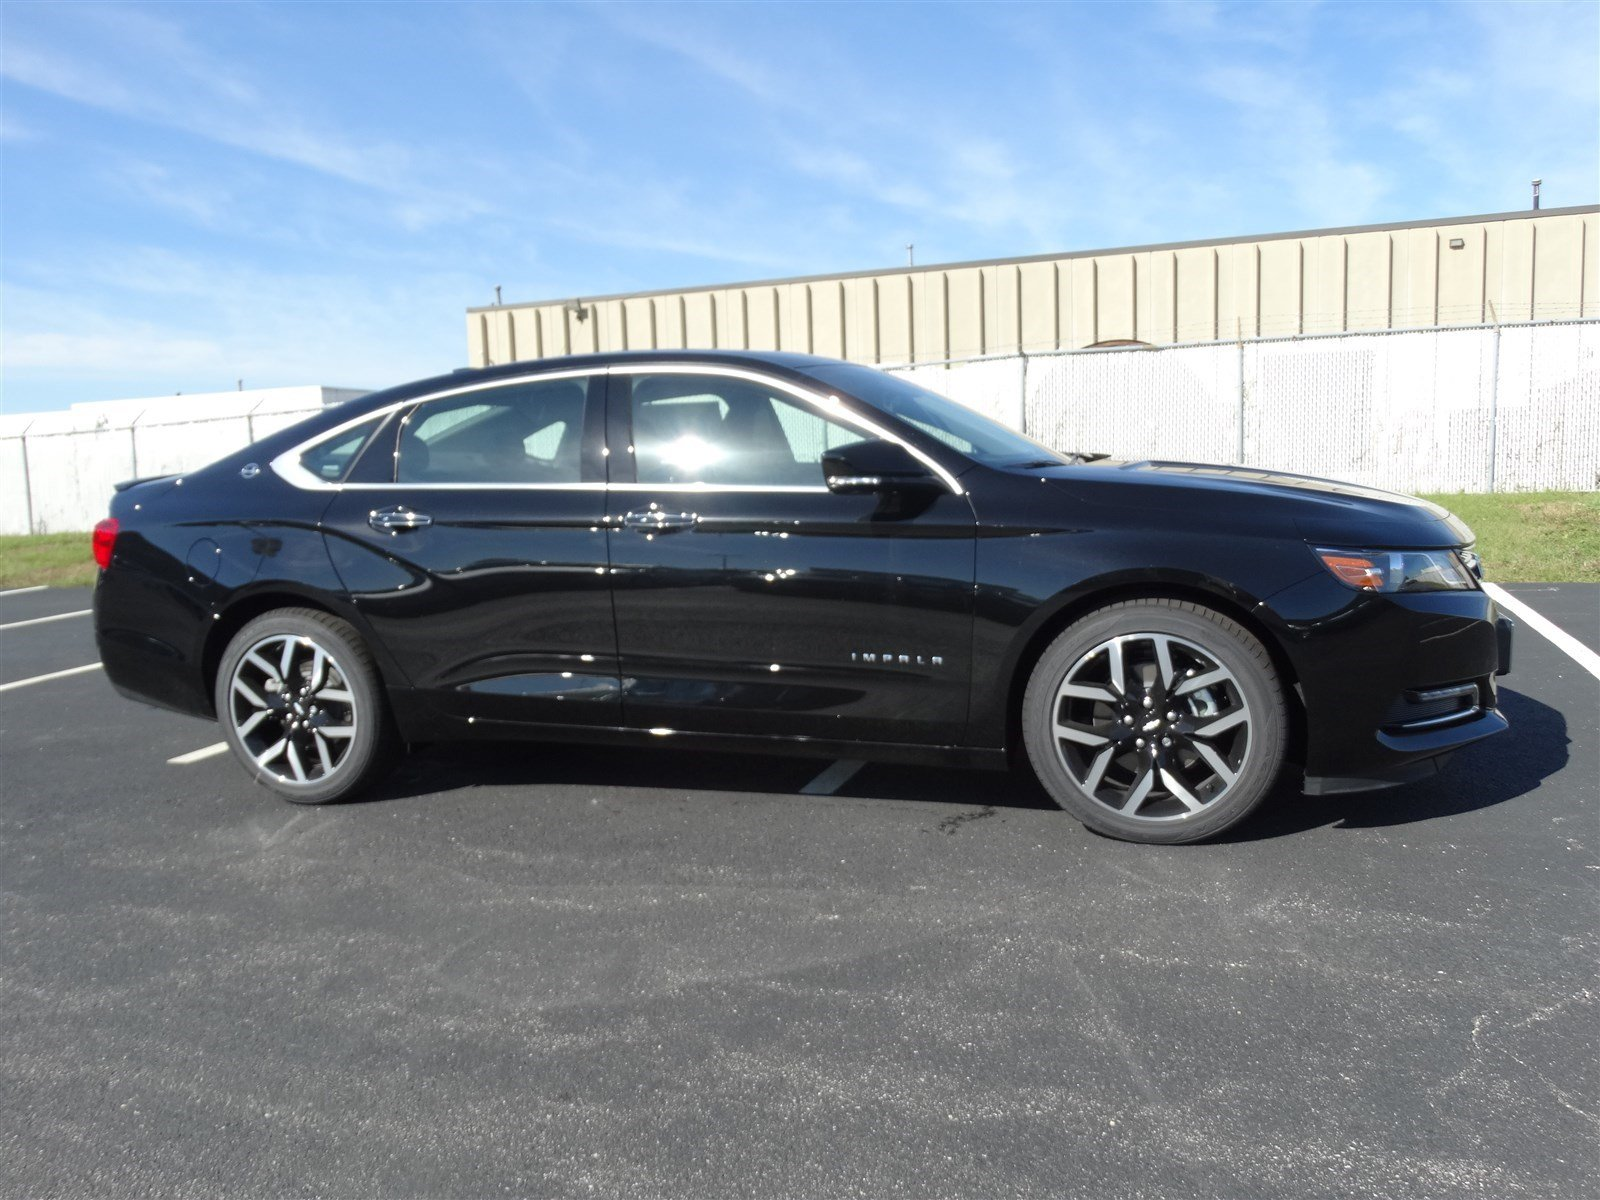 Chevrolet Of Naperville >> New 2017 Chevrolet Impala Premier 4dr Car in Naperville #C5284 | Chevrolet of Naperville